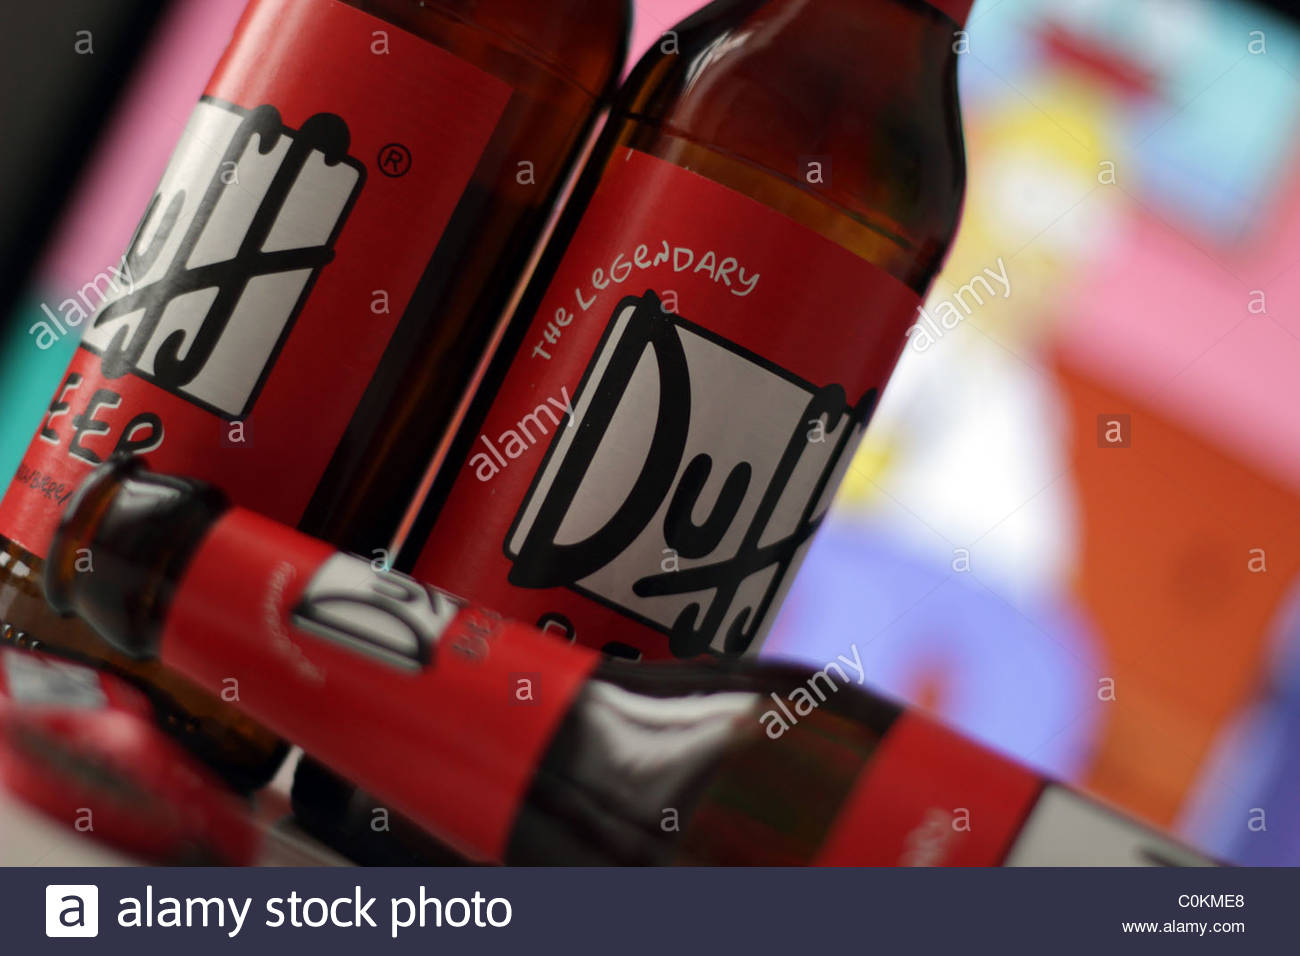 Duff Beer bottles stand in front of a screen playing the Matt Groening cartoon 'The Simpsons'. - Stock Image